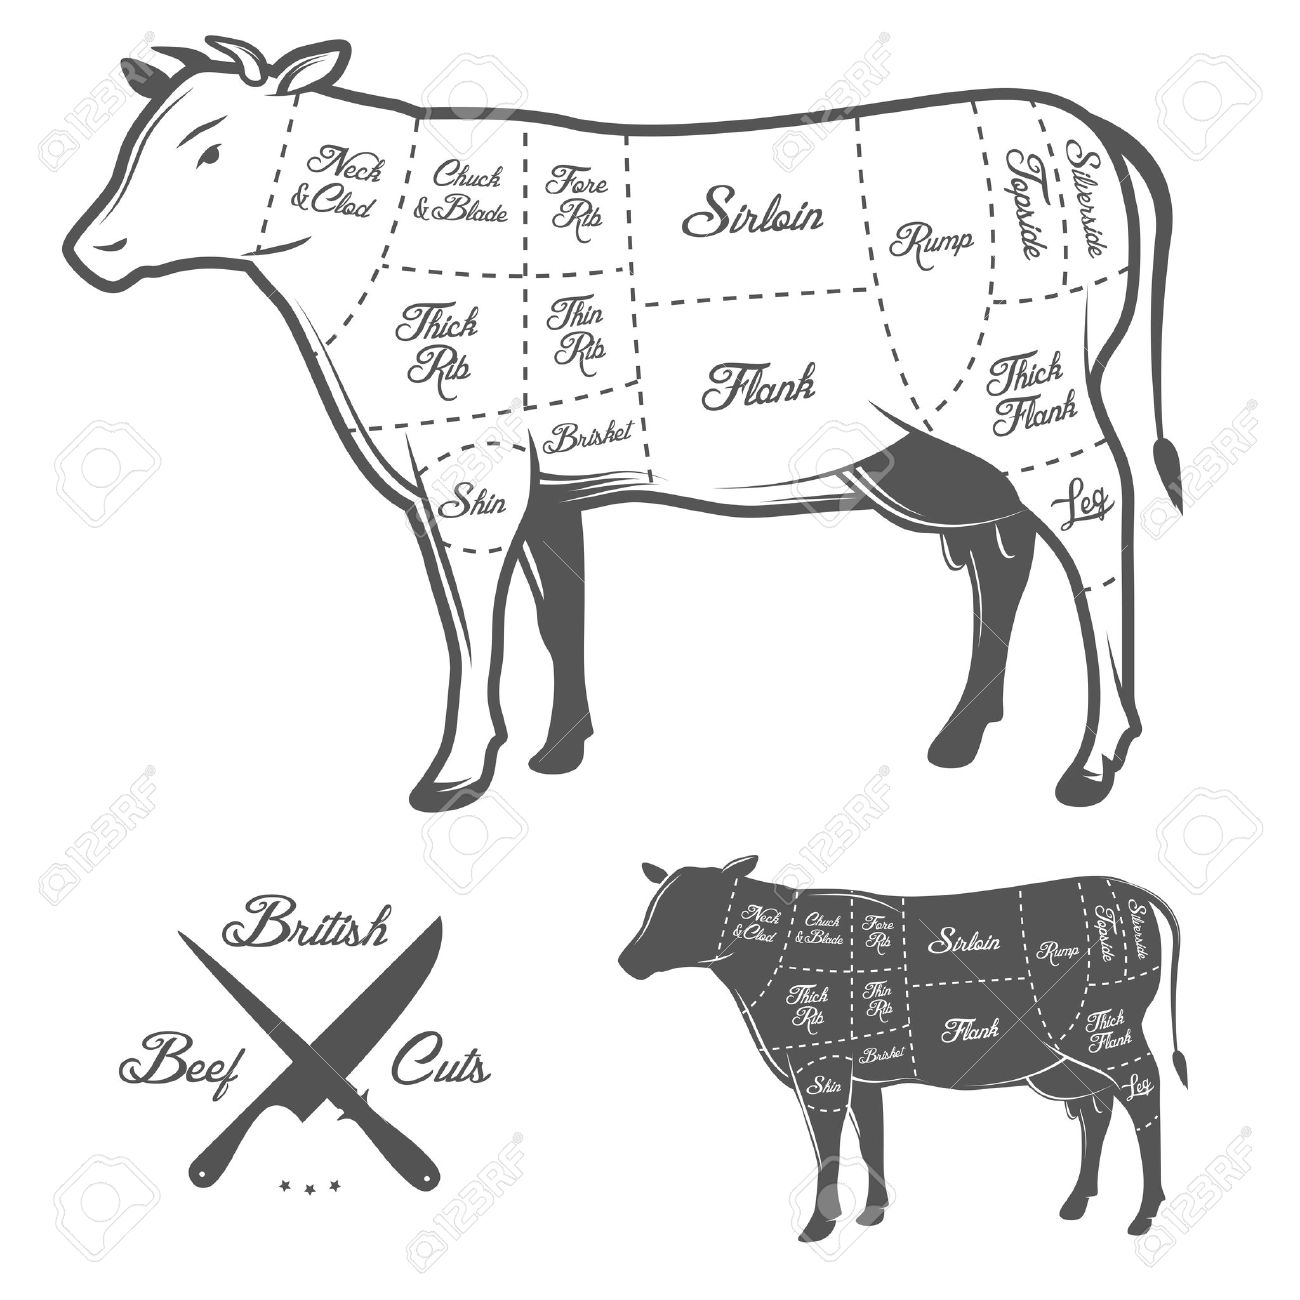 British butcher cuts of beef diagram royalty free cliparts vectors british butcher cuts of beef diagram stock vector 29494037 ccuart Gallery